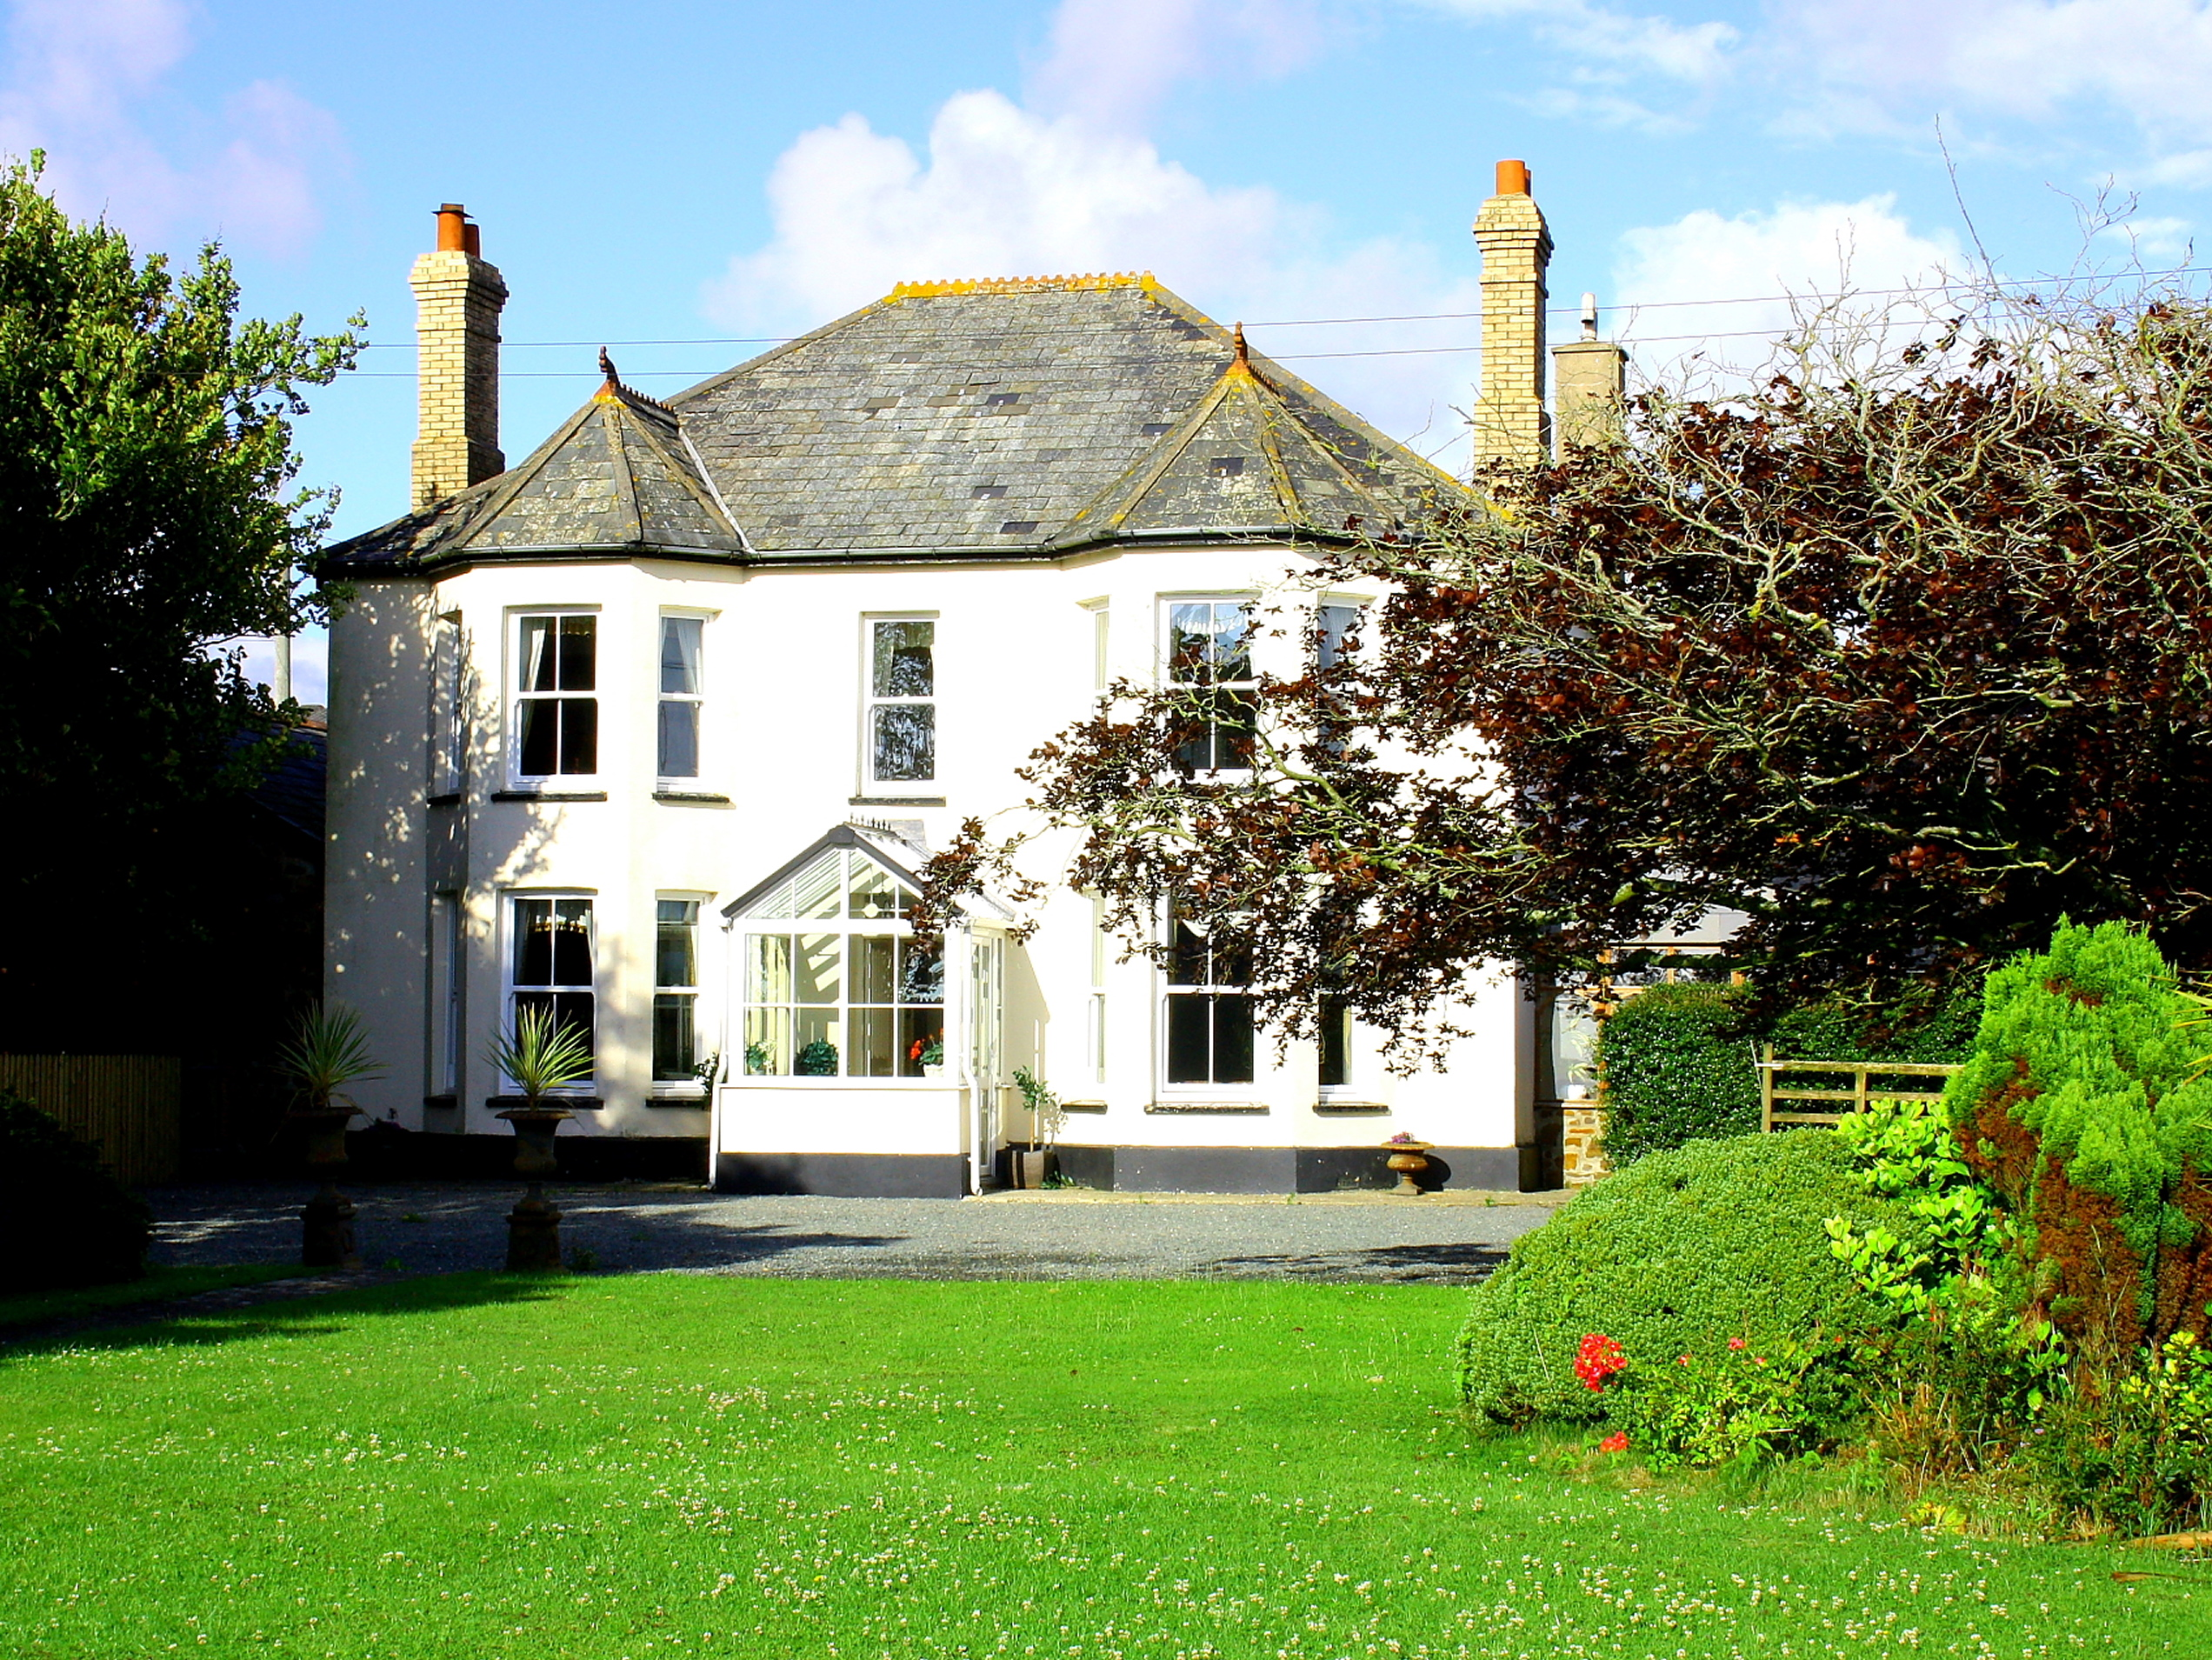 Penleaze Farmhouse